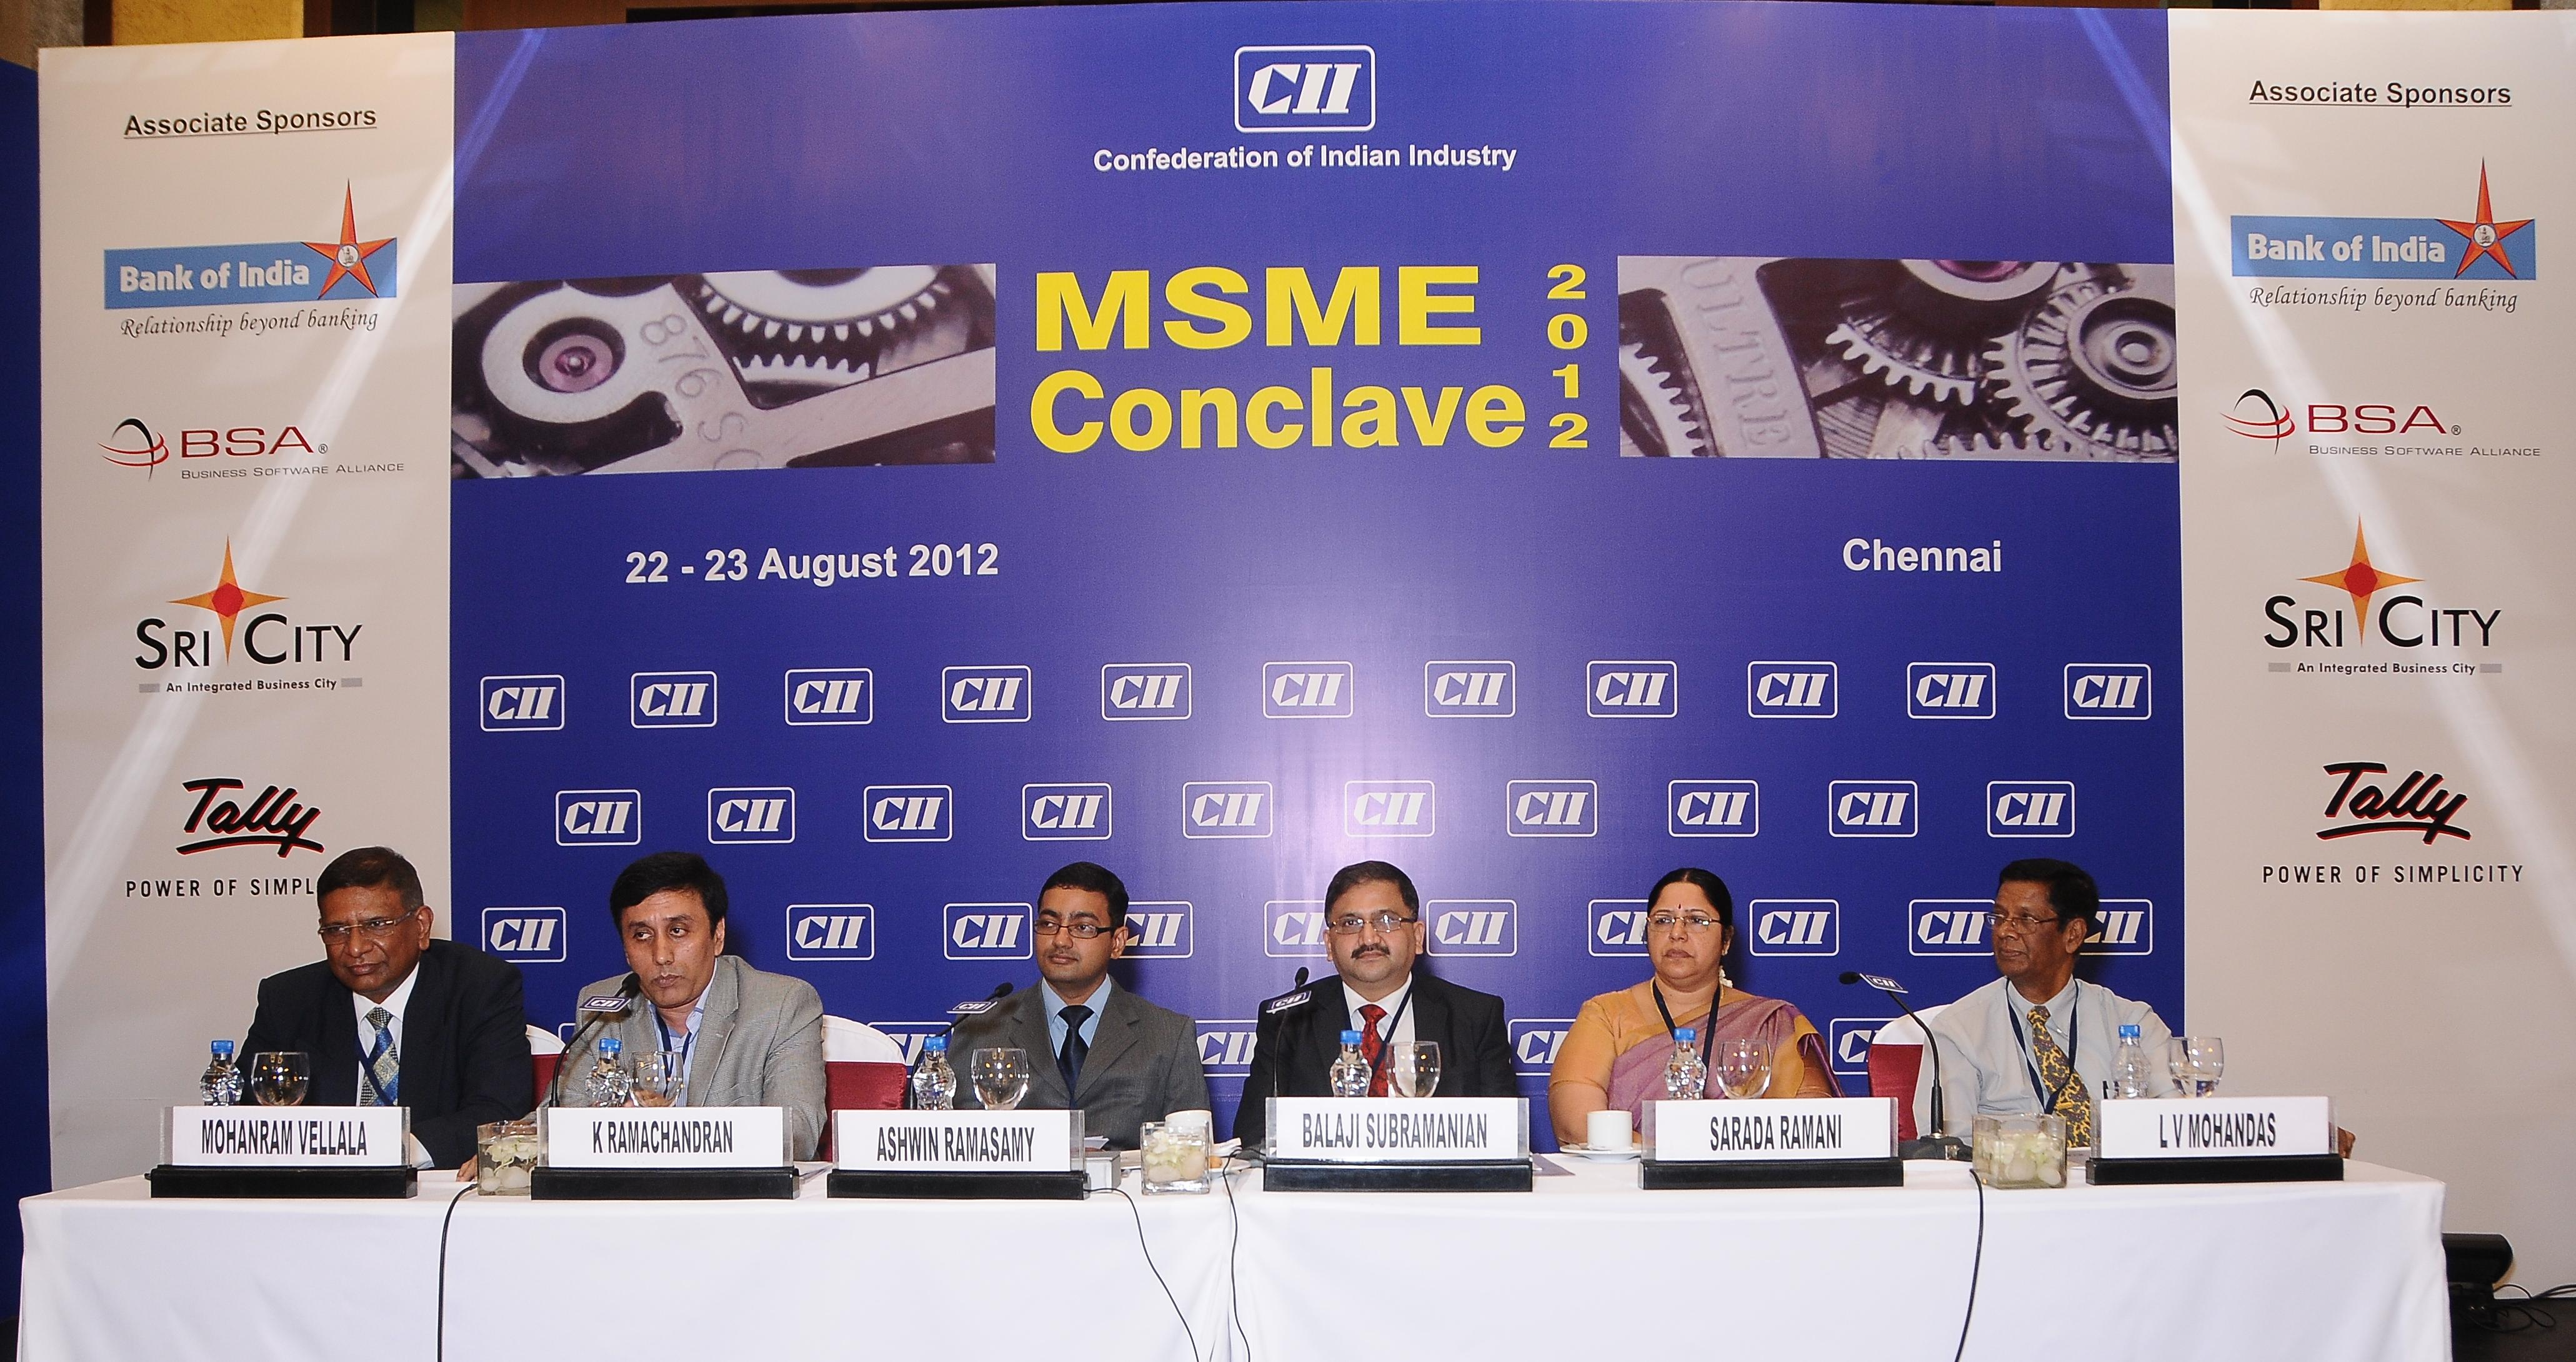 Regional MSME Conclave 2012